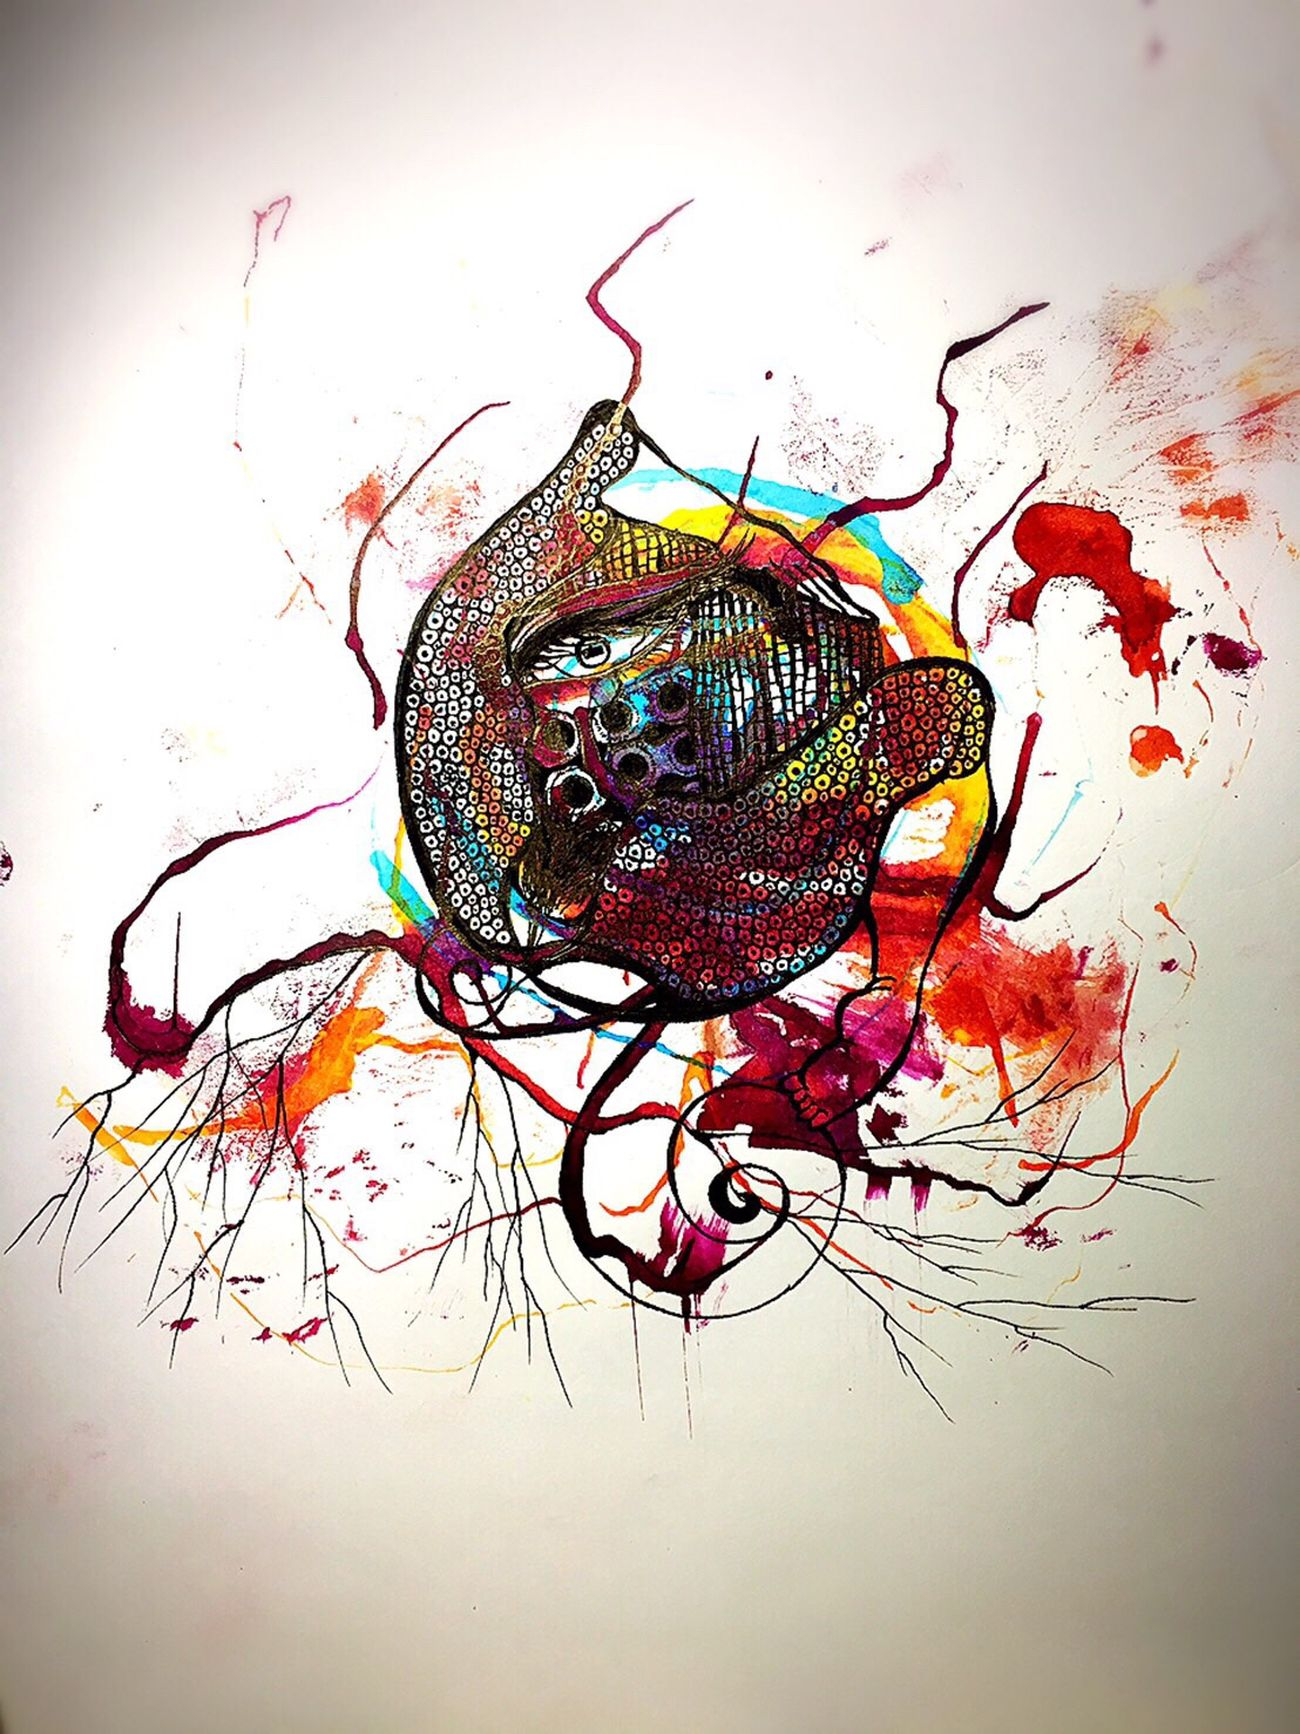 Multi Colored ArtWork Art And Craft Art, Drawing, Creativity Drawing Drawing ✏ EyeEmNewHere Abstract Art